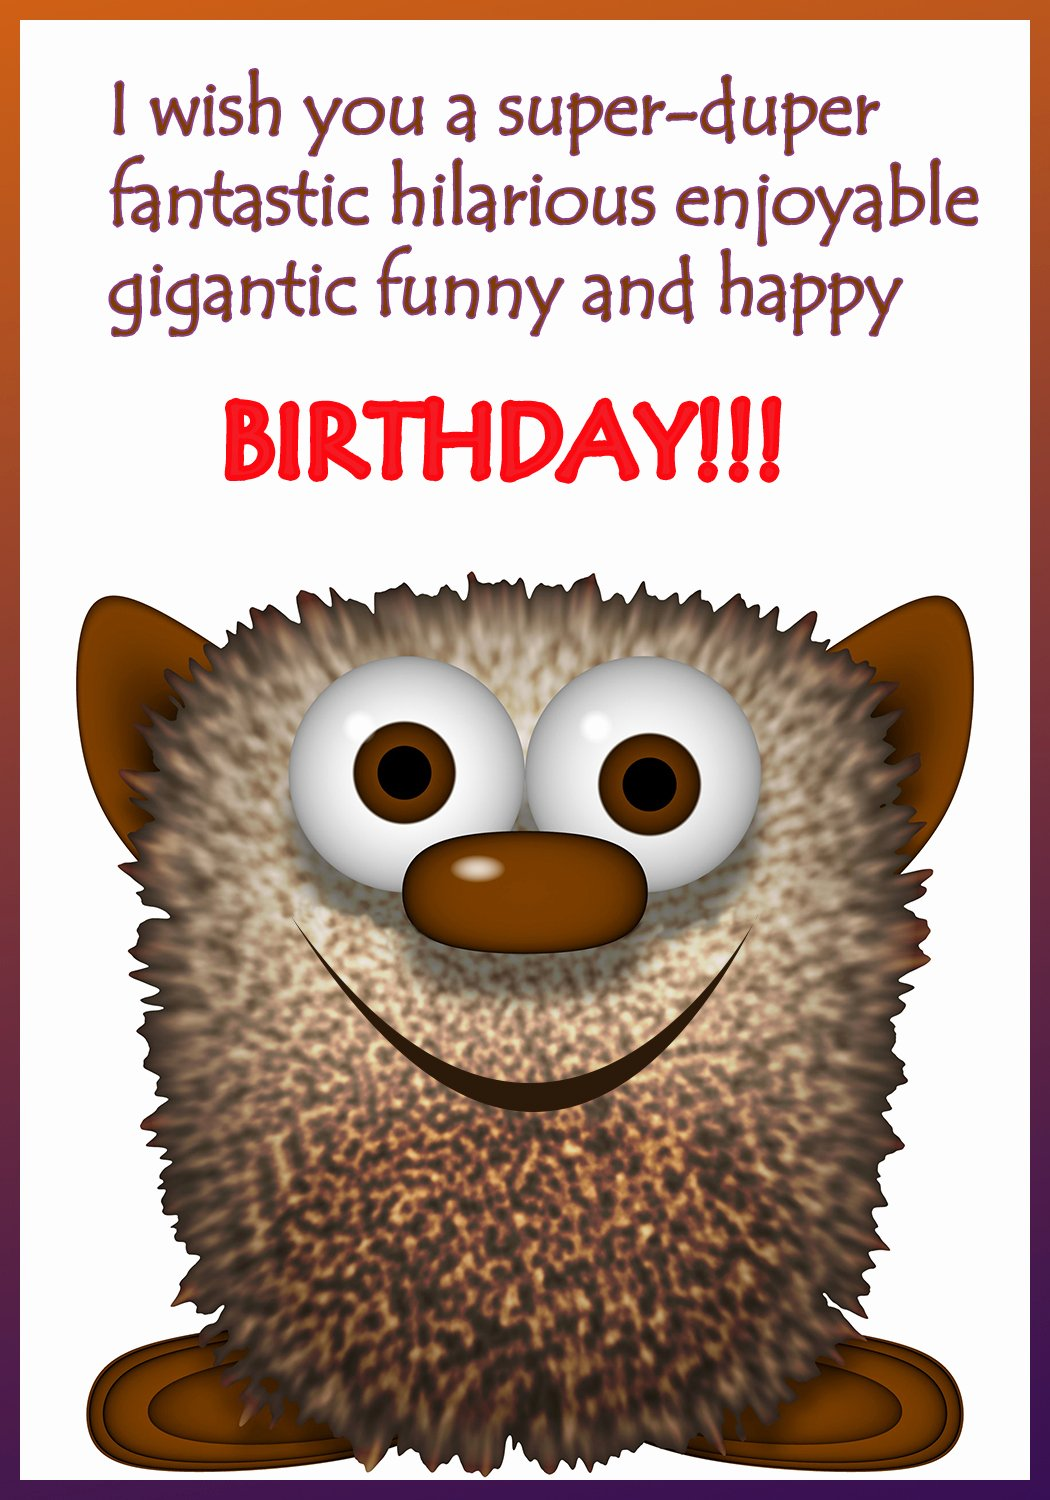 Printable Funny Birthday Cards Lovely Funny Printable Birthday Cards